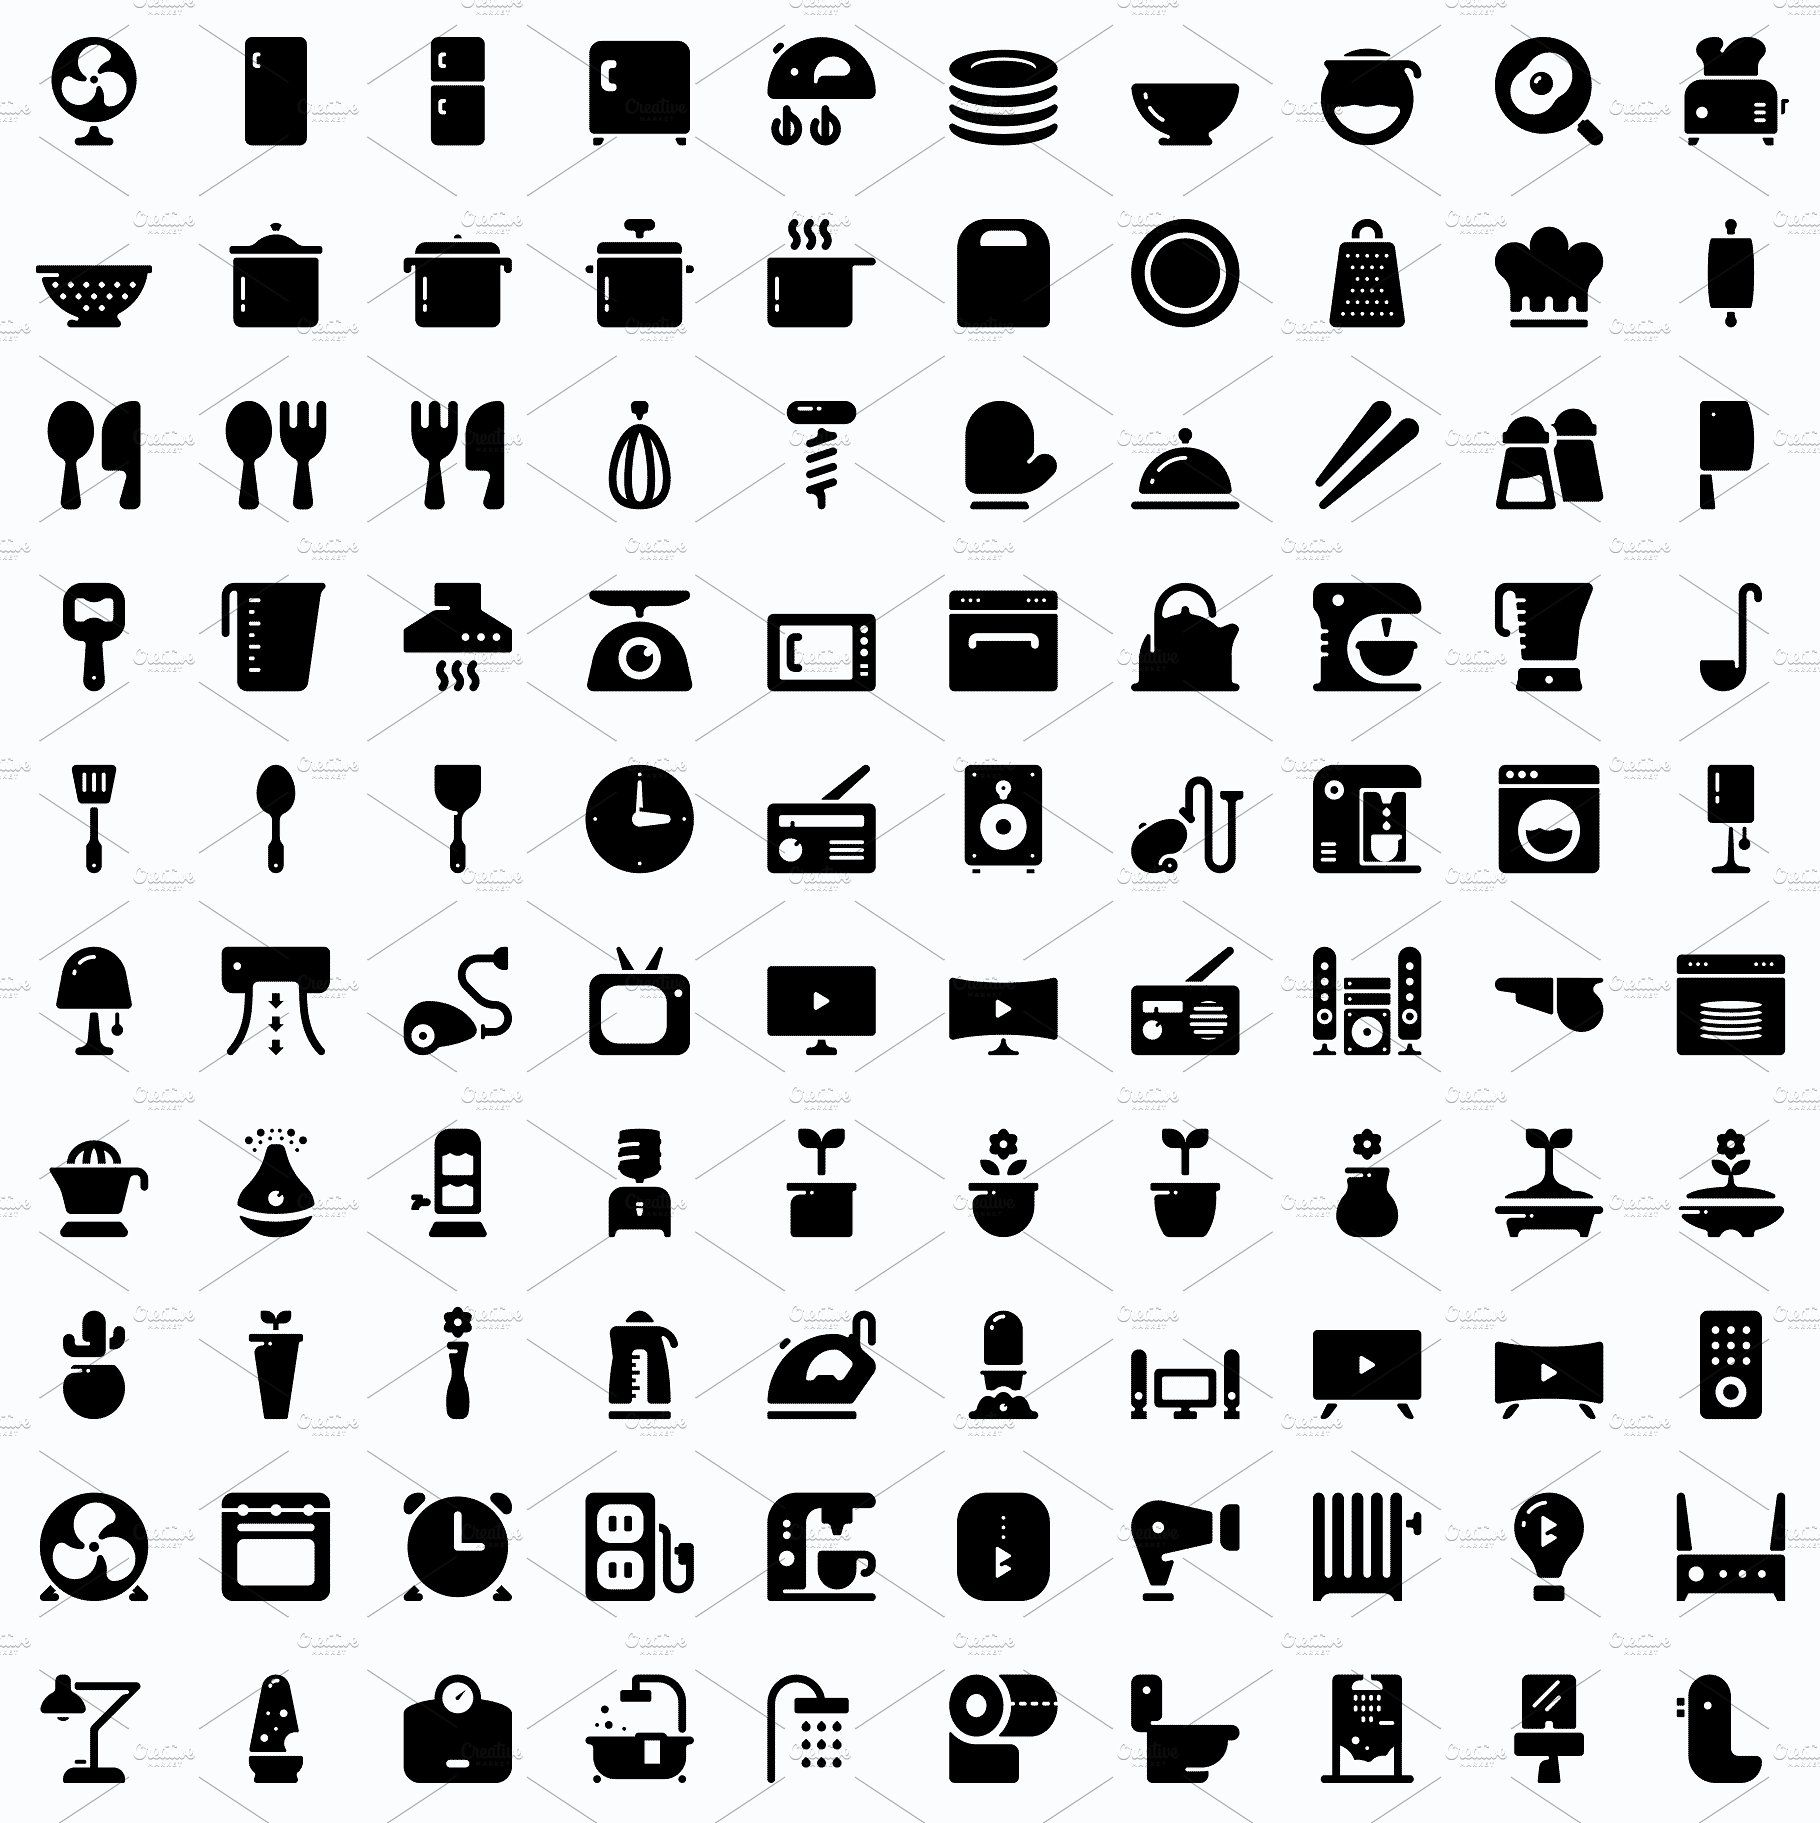 Roundies 2200 solid icons icon flaticon icons icon pack icon